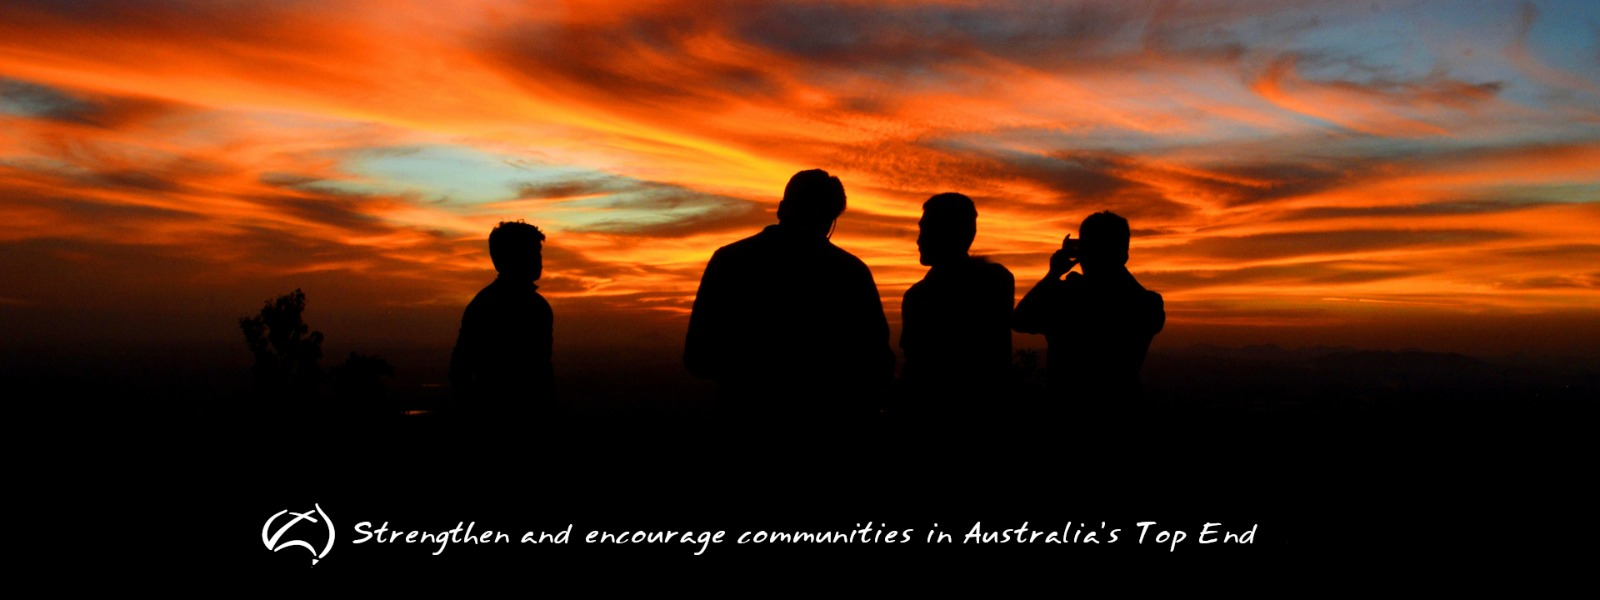 People silhouetted in front of a a sunset with a white BCA logo and text: Strengthen and encourage communities in Australia's Top End